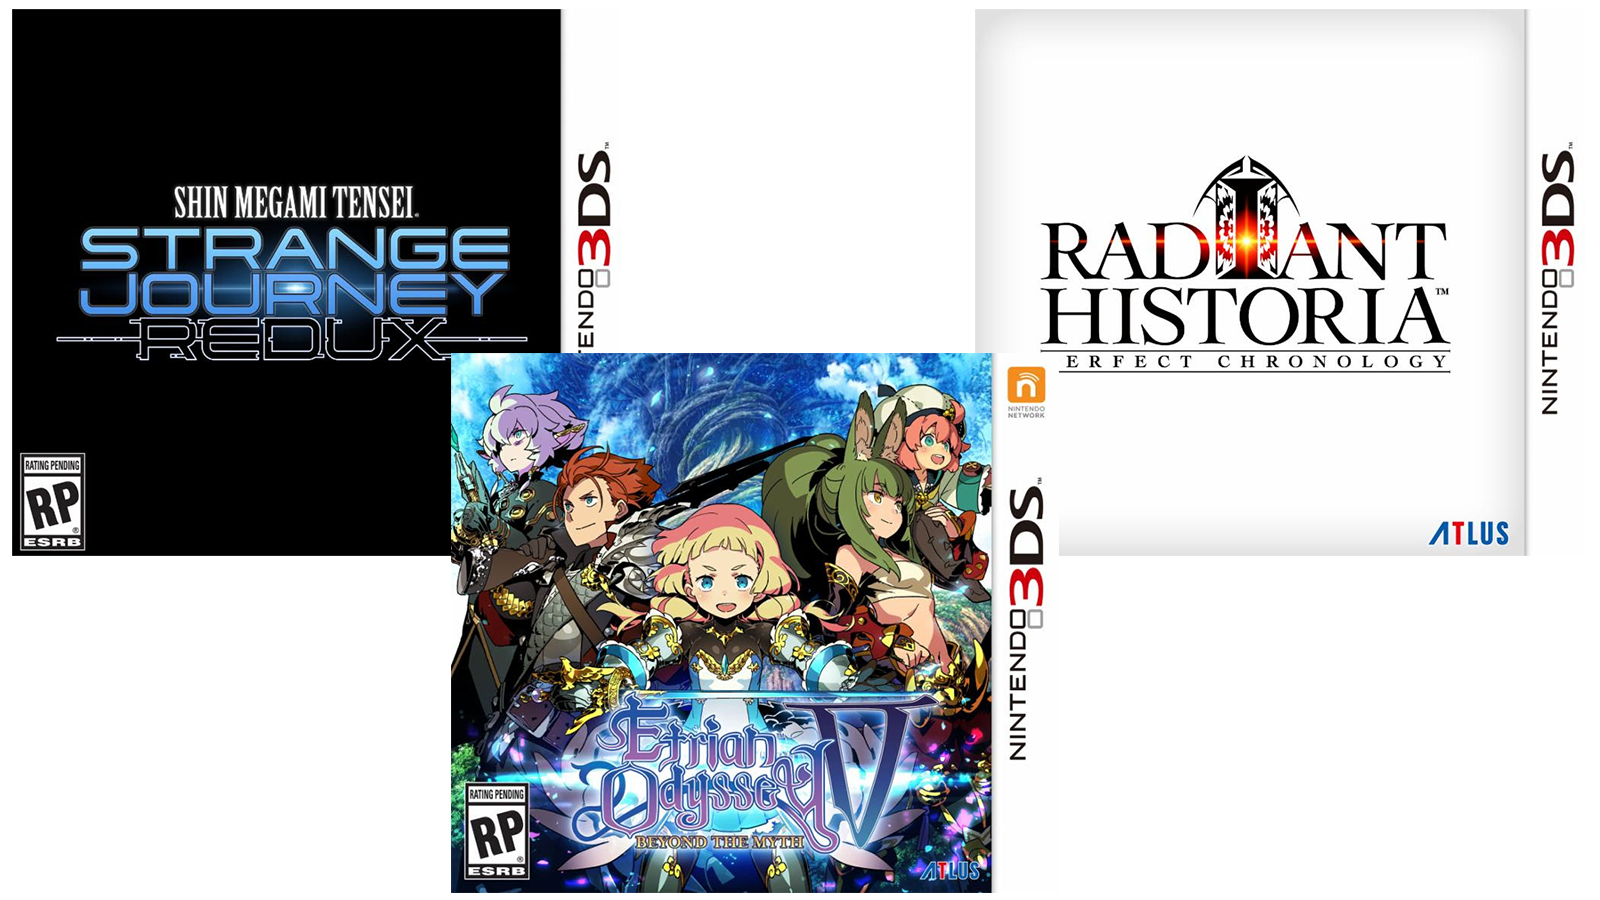 Atlus is bringing three great JRPGs to North America for the 3DS